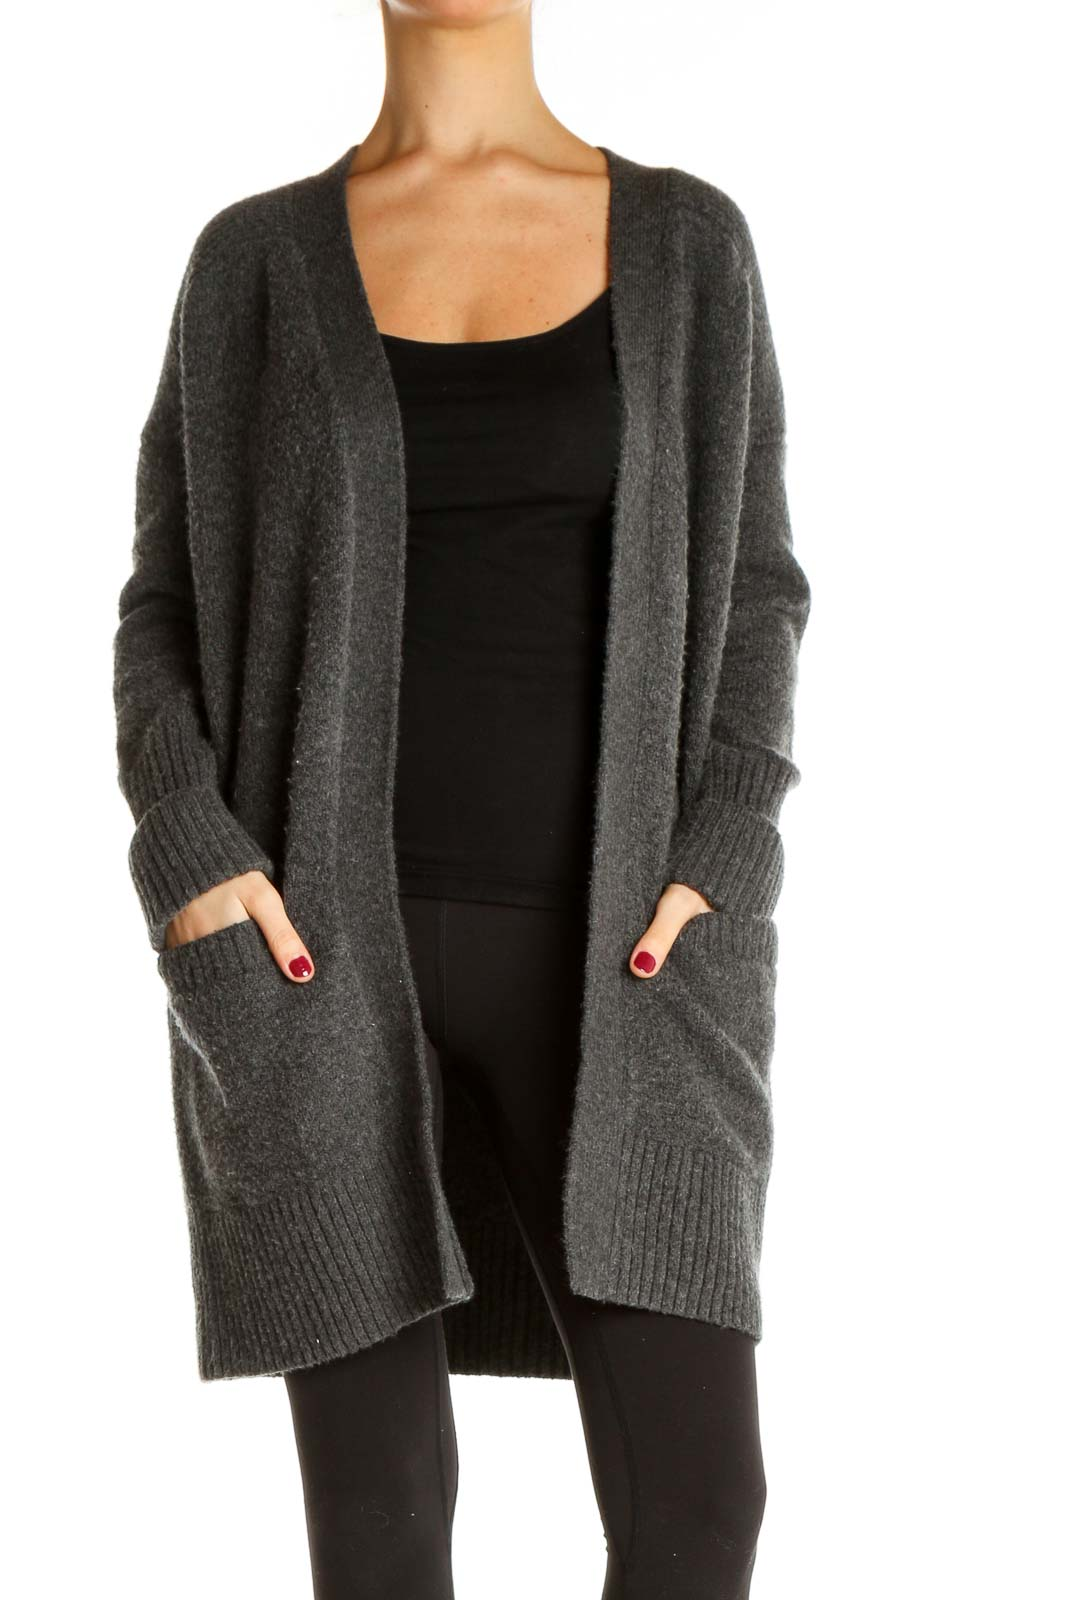 Gray All Day Wear Casual Cardigan Front